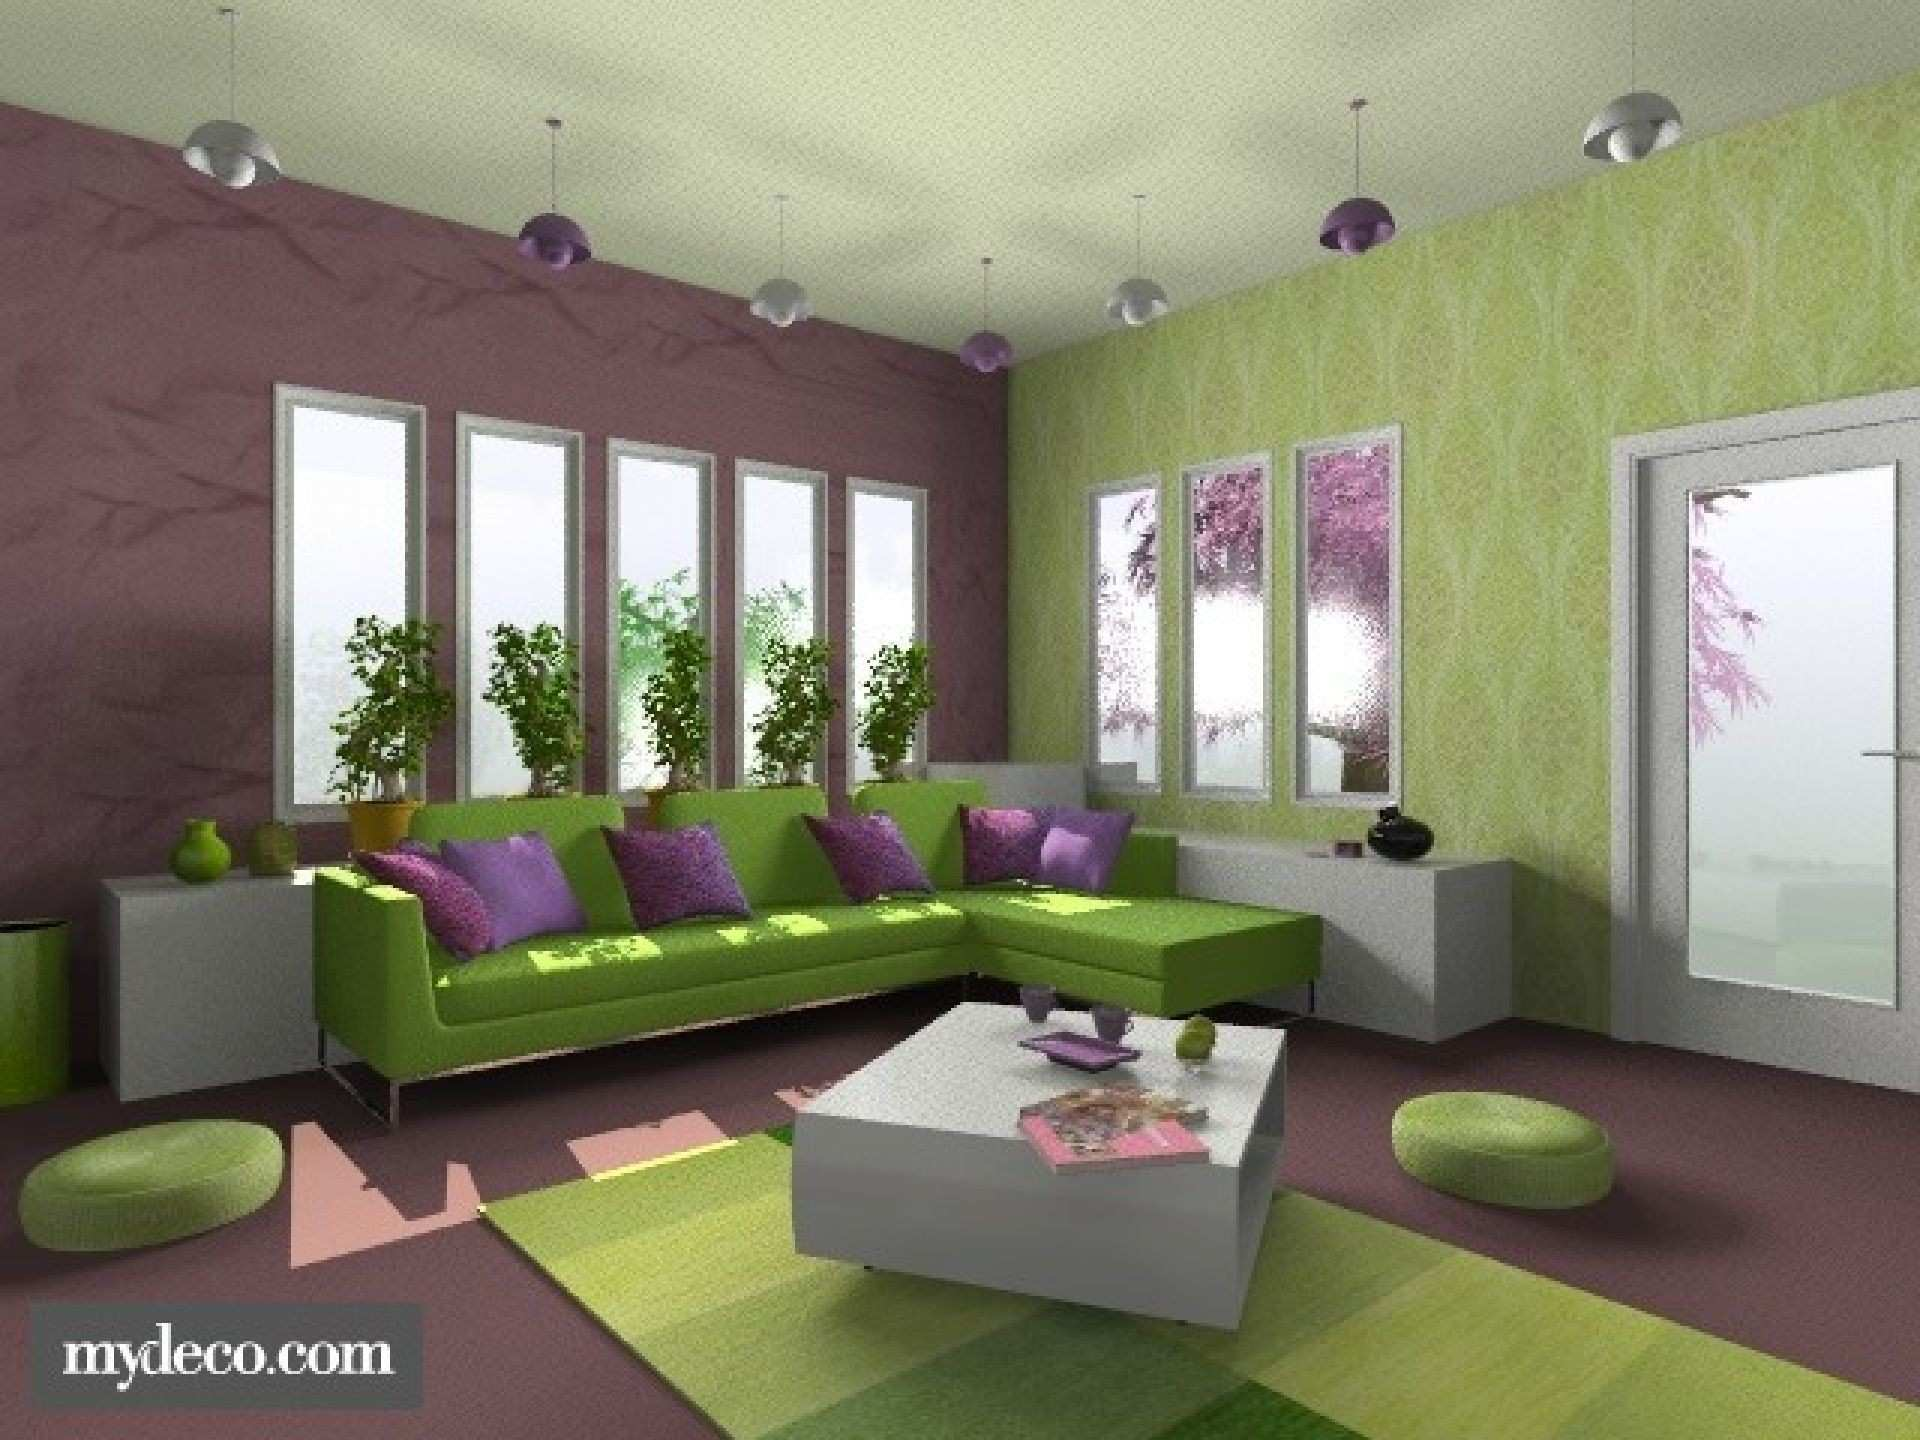 Decorating Ideas for Living Rooms with Green Walls Inspirational Big